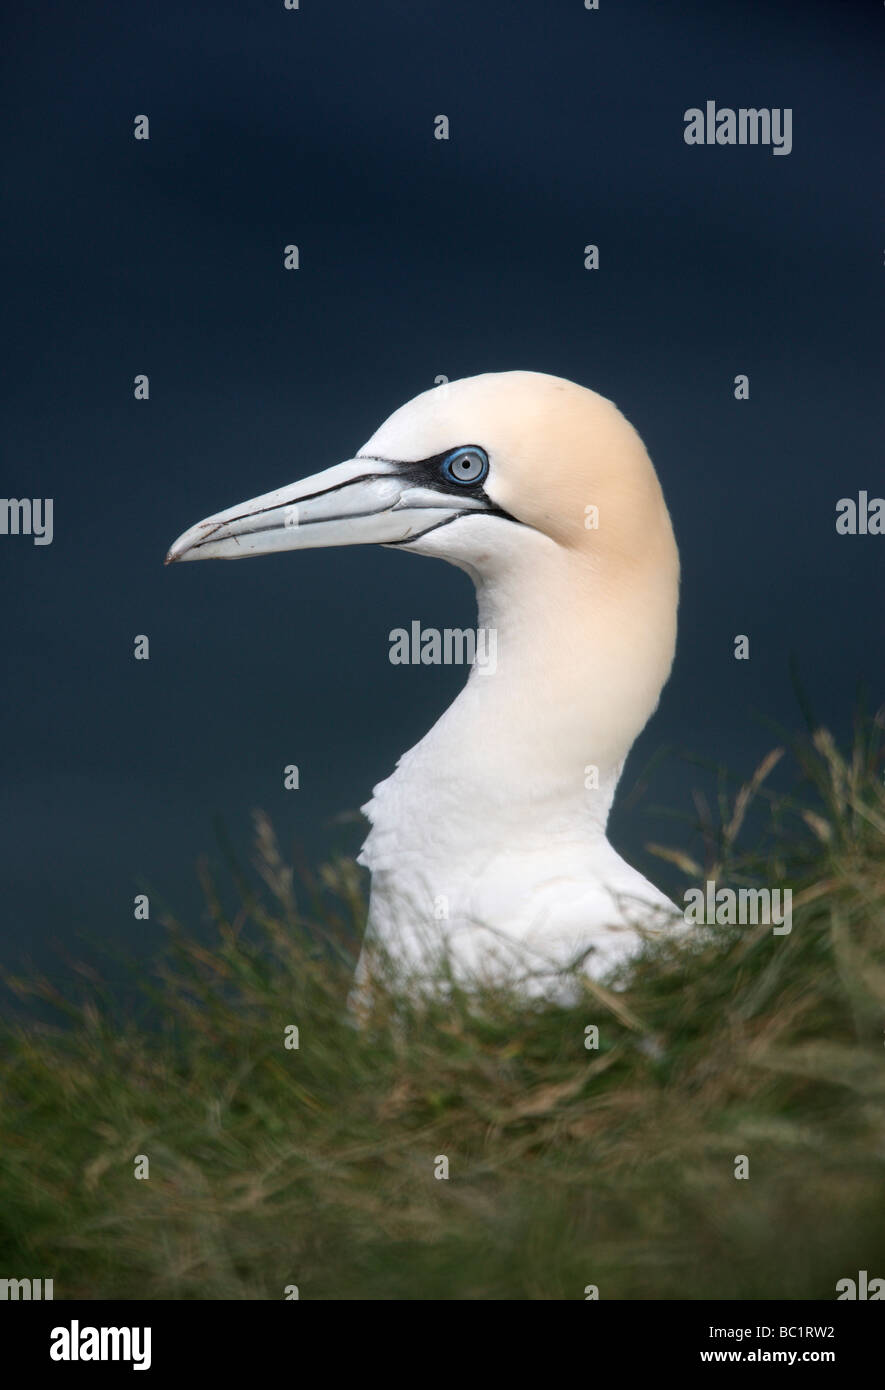 Gannet Sula bassana Troup Head Scotland - Stock Image